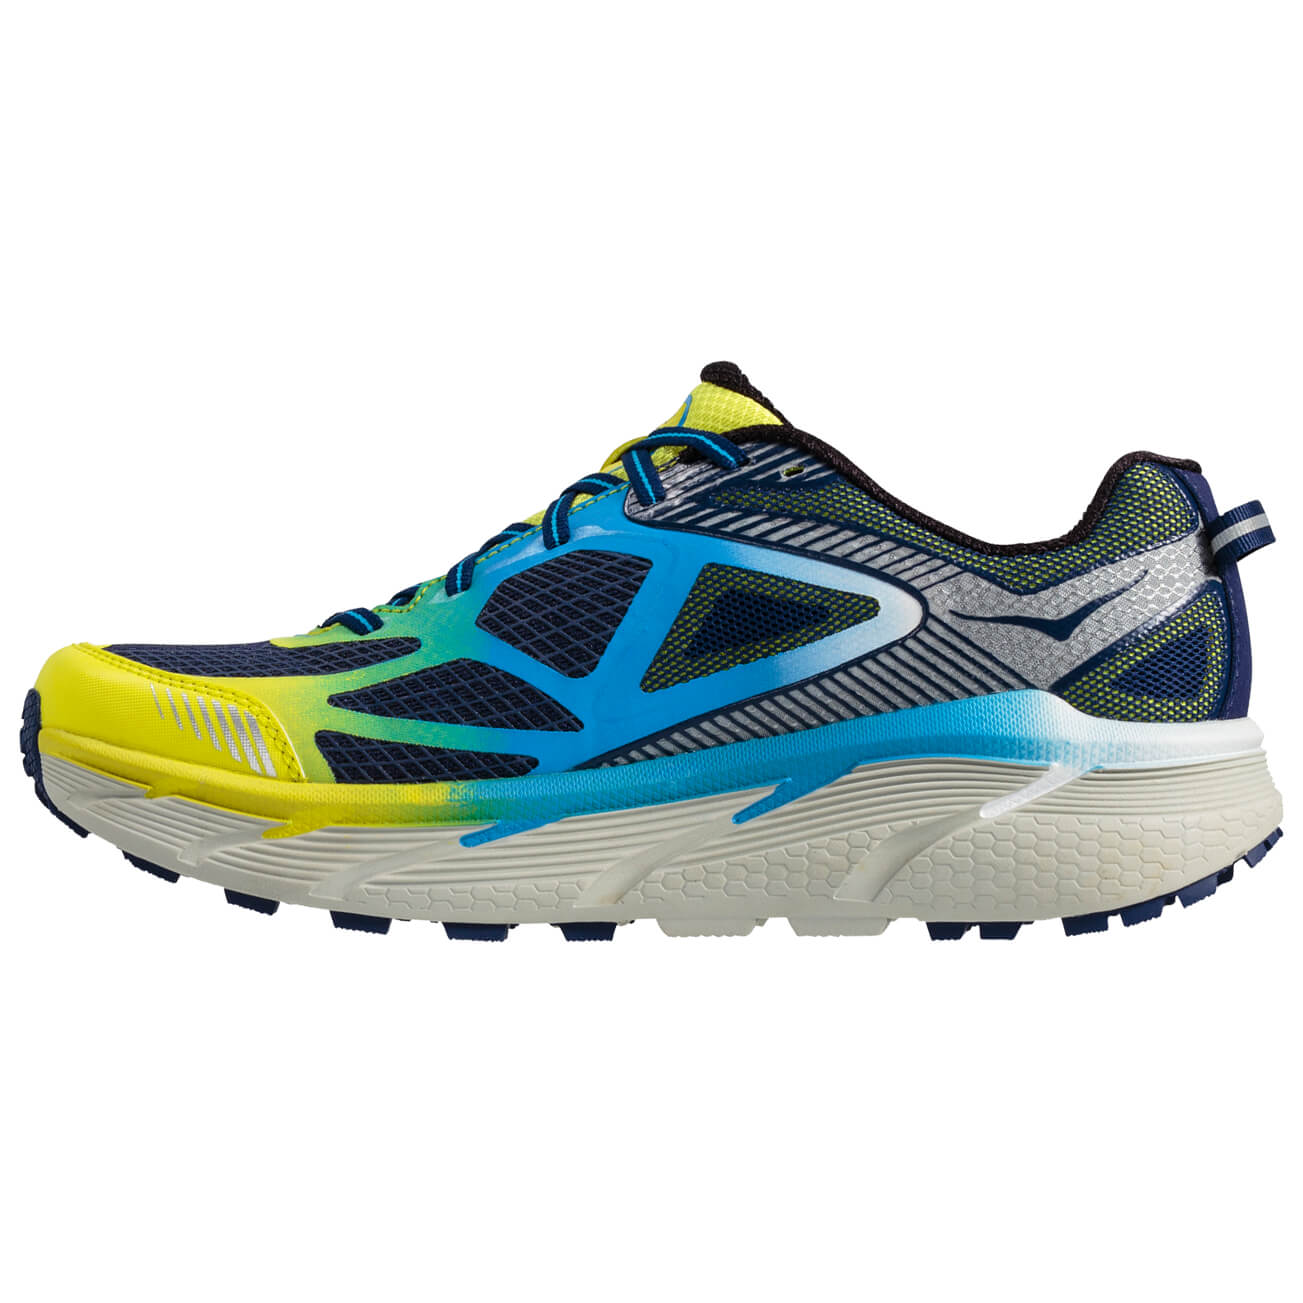 Hoka Men S Trail Running Shoes